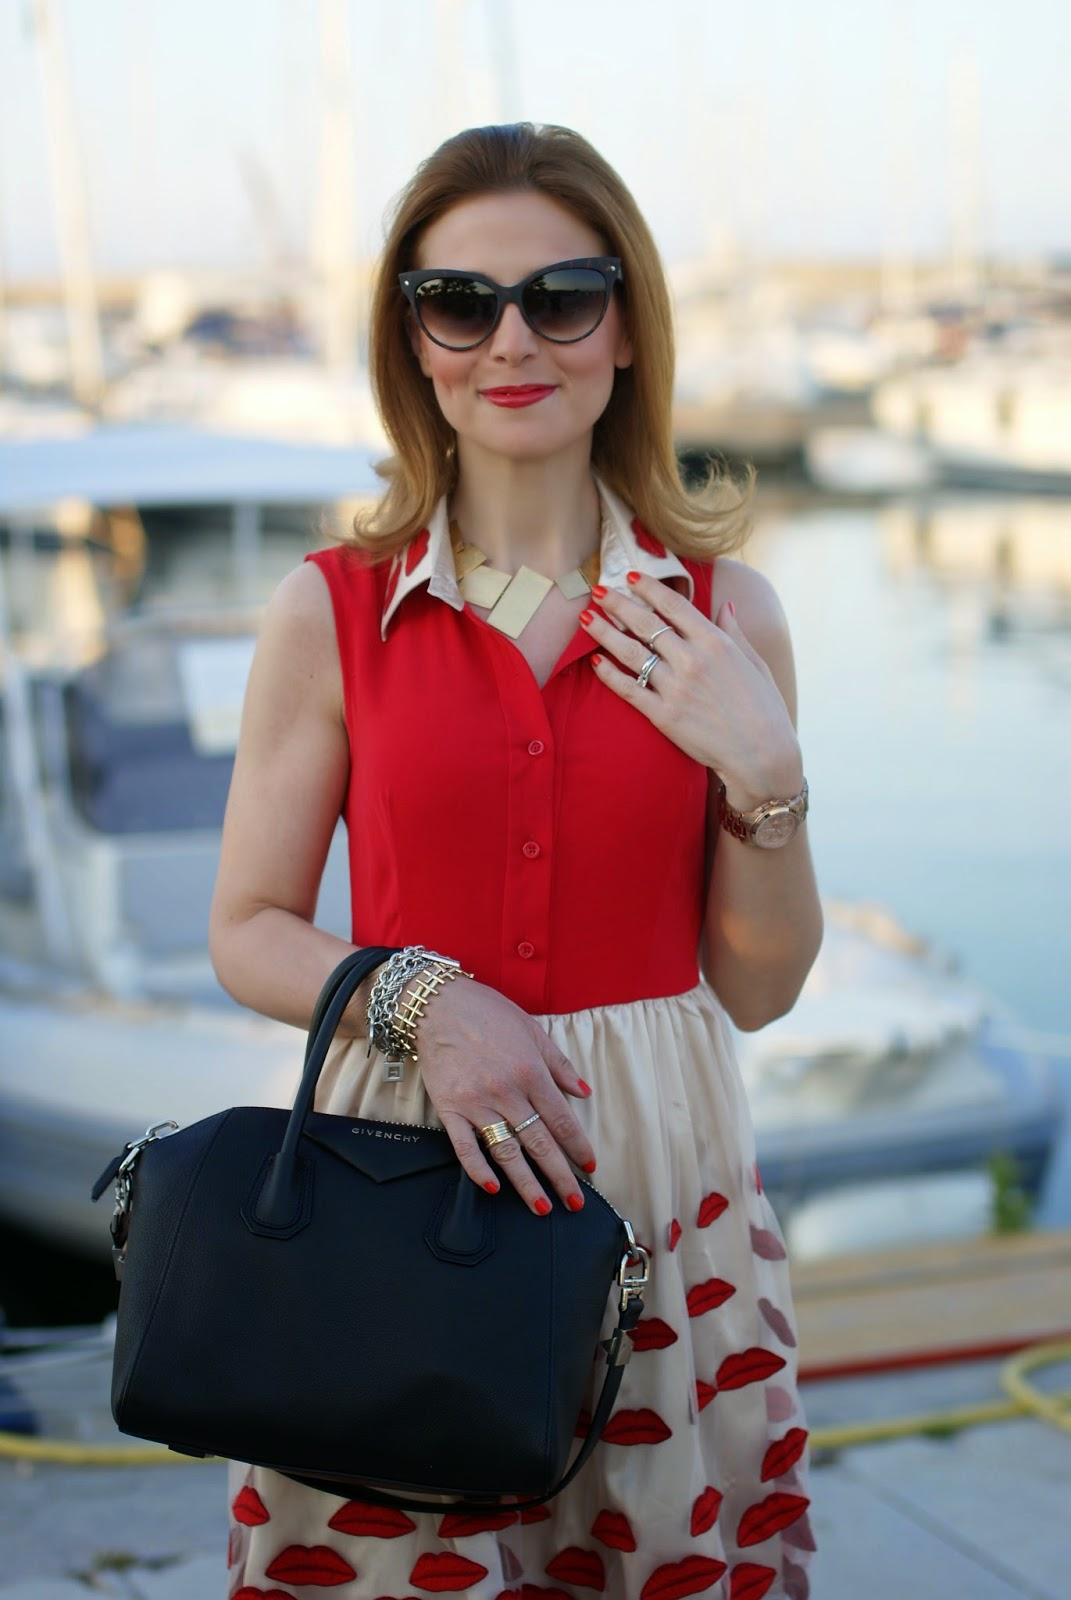 Vitti Ferria Contin necklace, NAU! sunglasses, Givenchy Antigona bag, Fashion and Cookies, fashion blogger